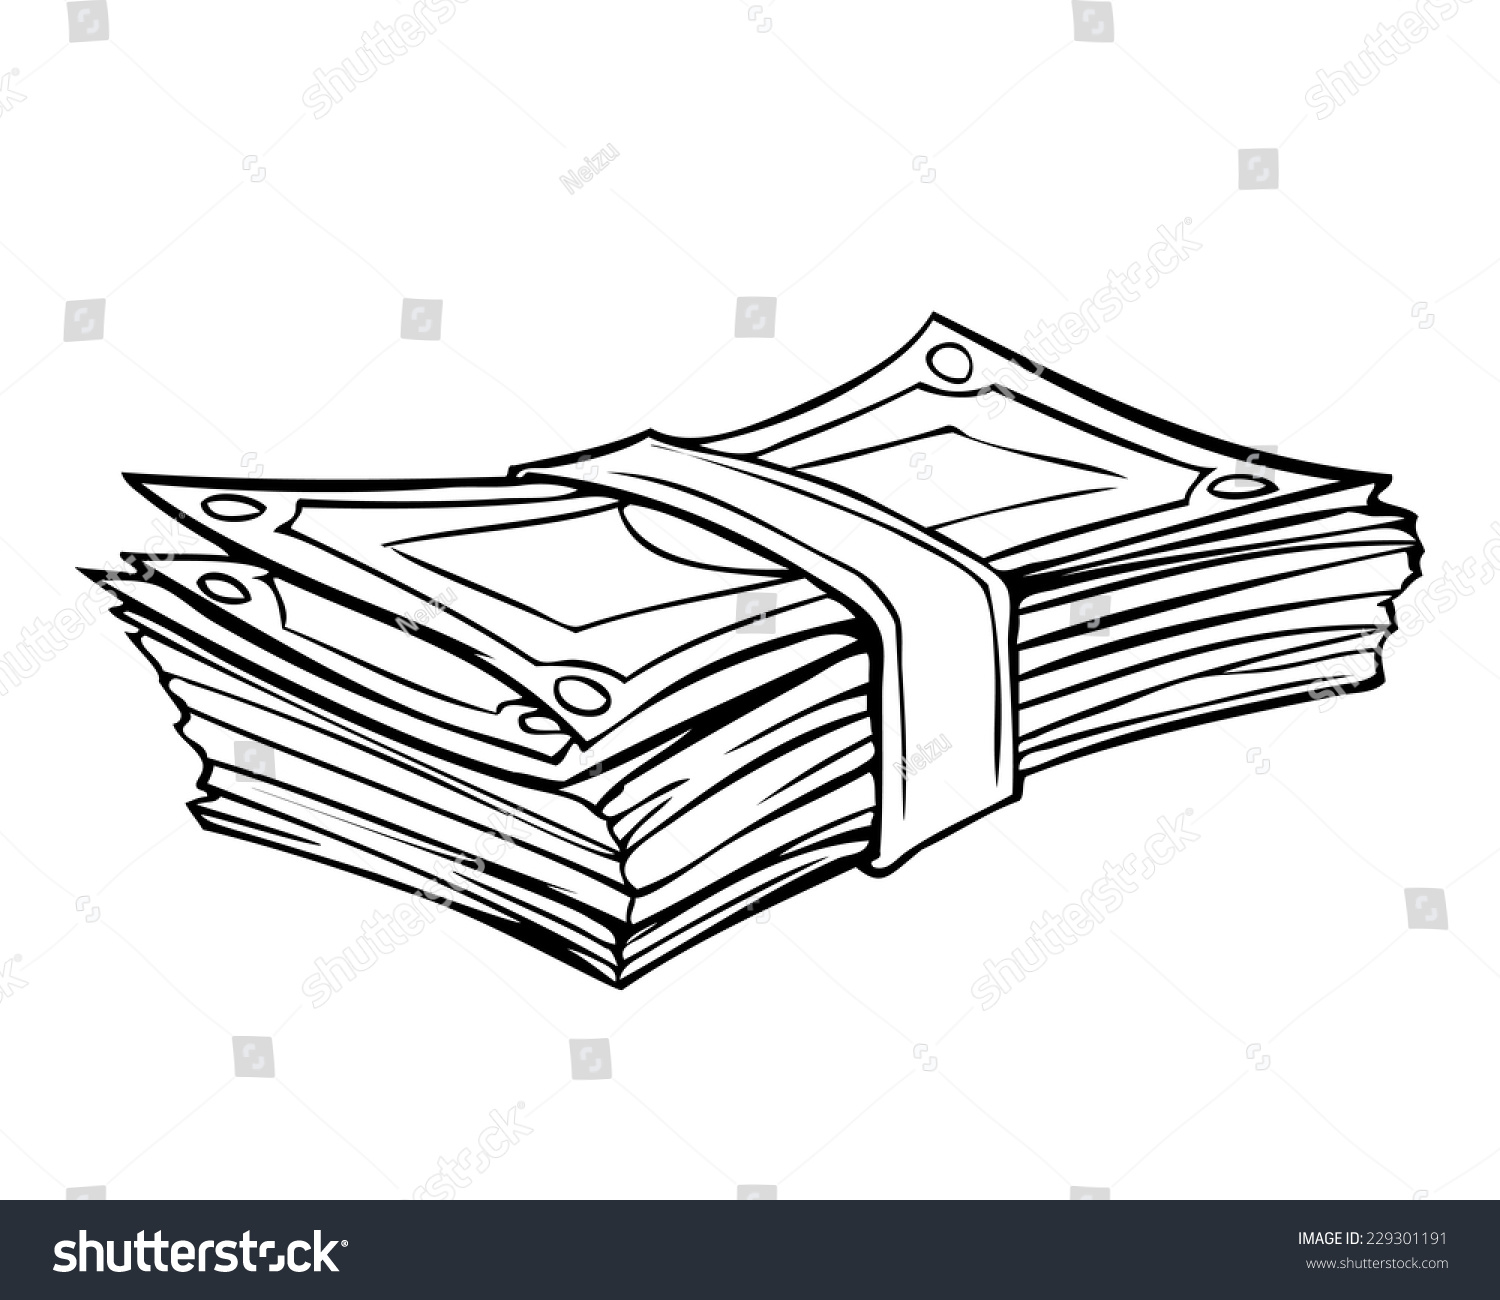 It is a photo of Trust Stacks Of Money Drawing